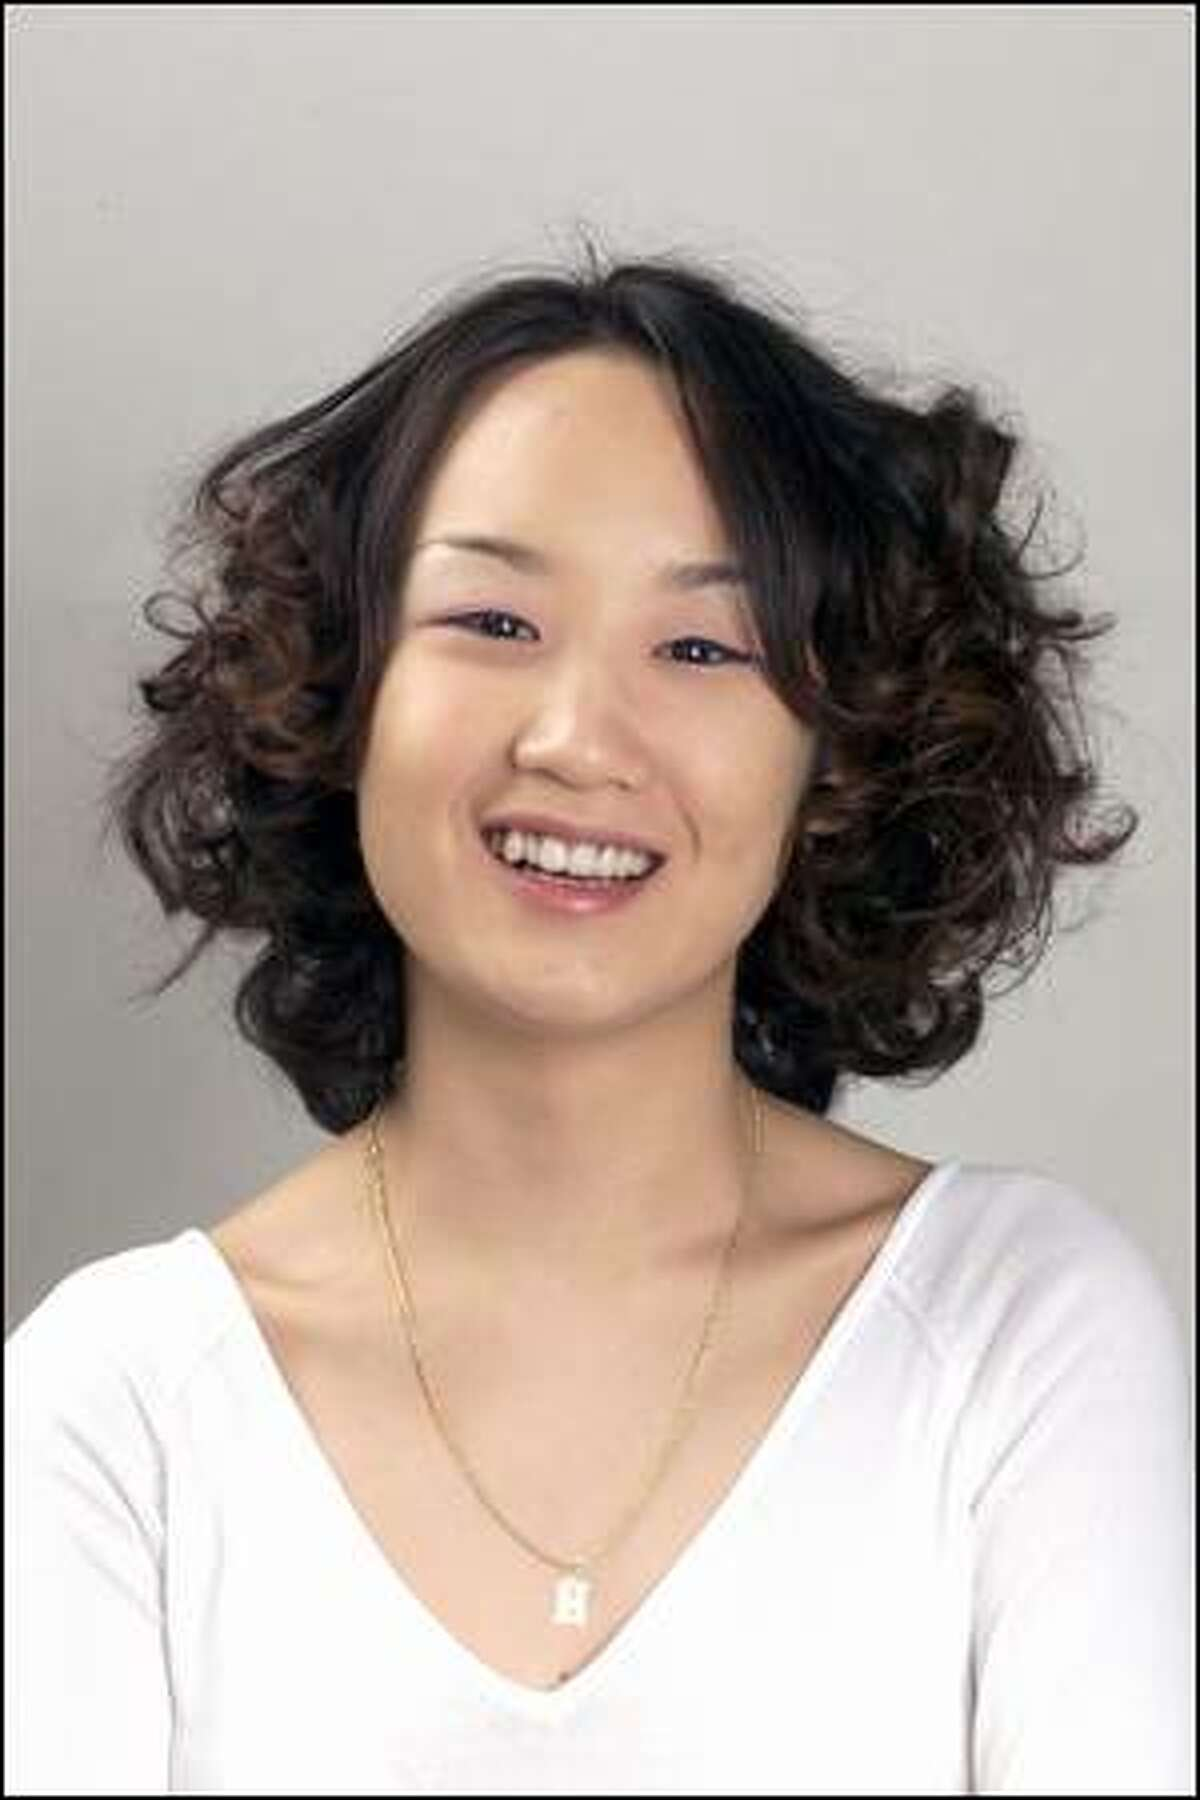 Hye-Jin Lee, a student at the University of Washington, has naturally thick, wavy hair. She had been wearing it with curls but wanted to try something new.